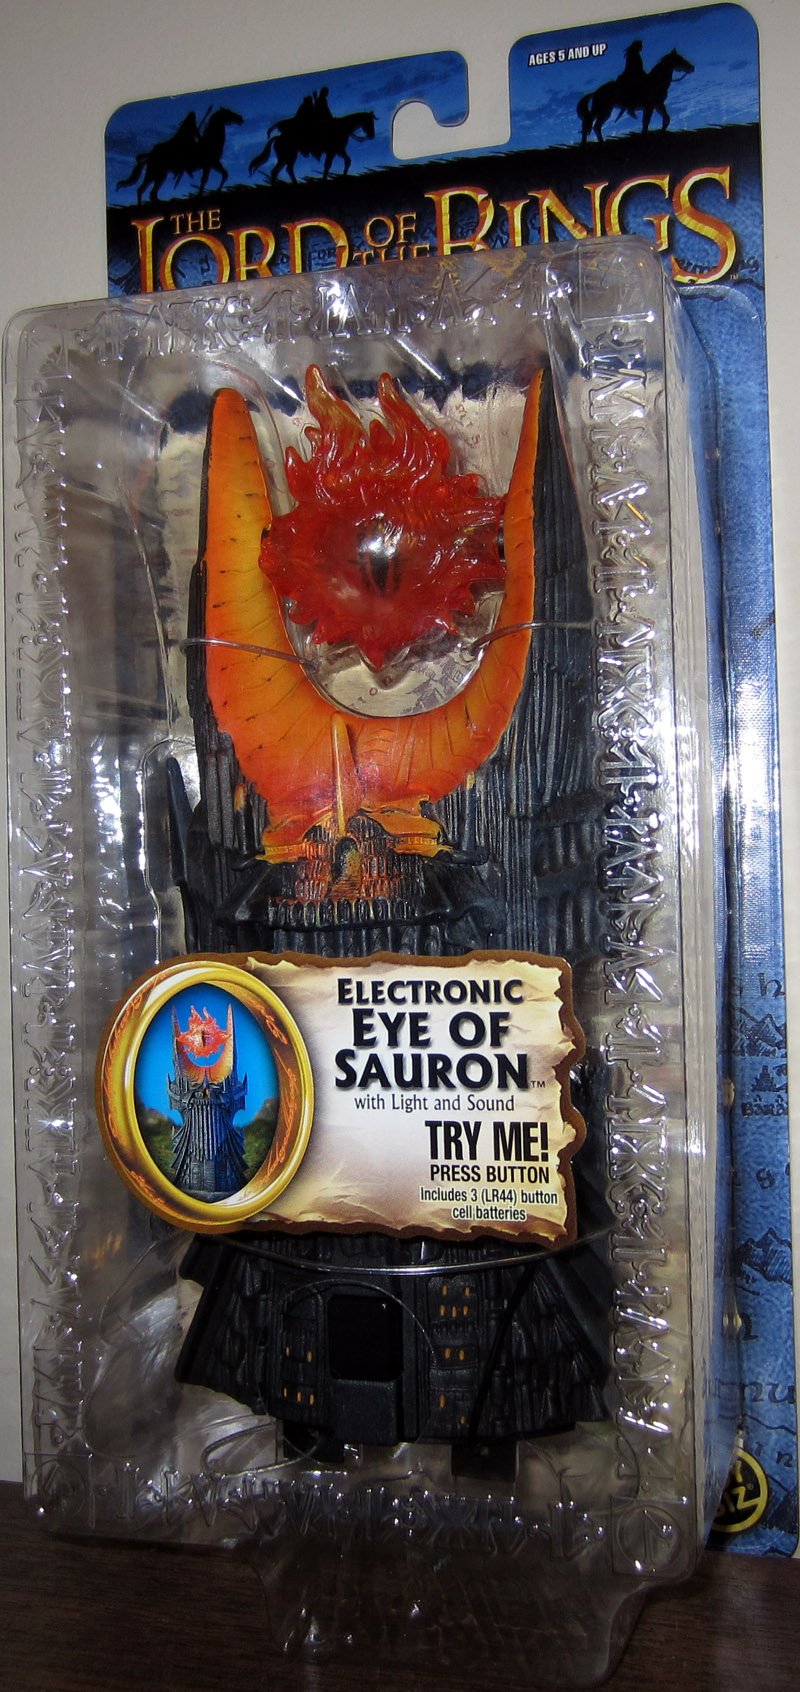 Electronic Eye of Sauron (Trilogy)